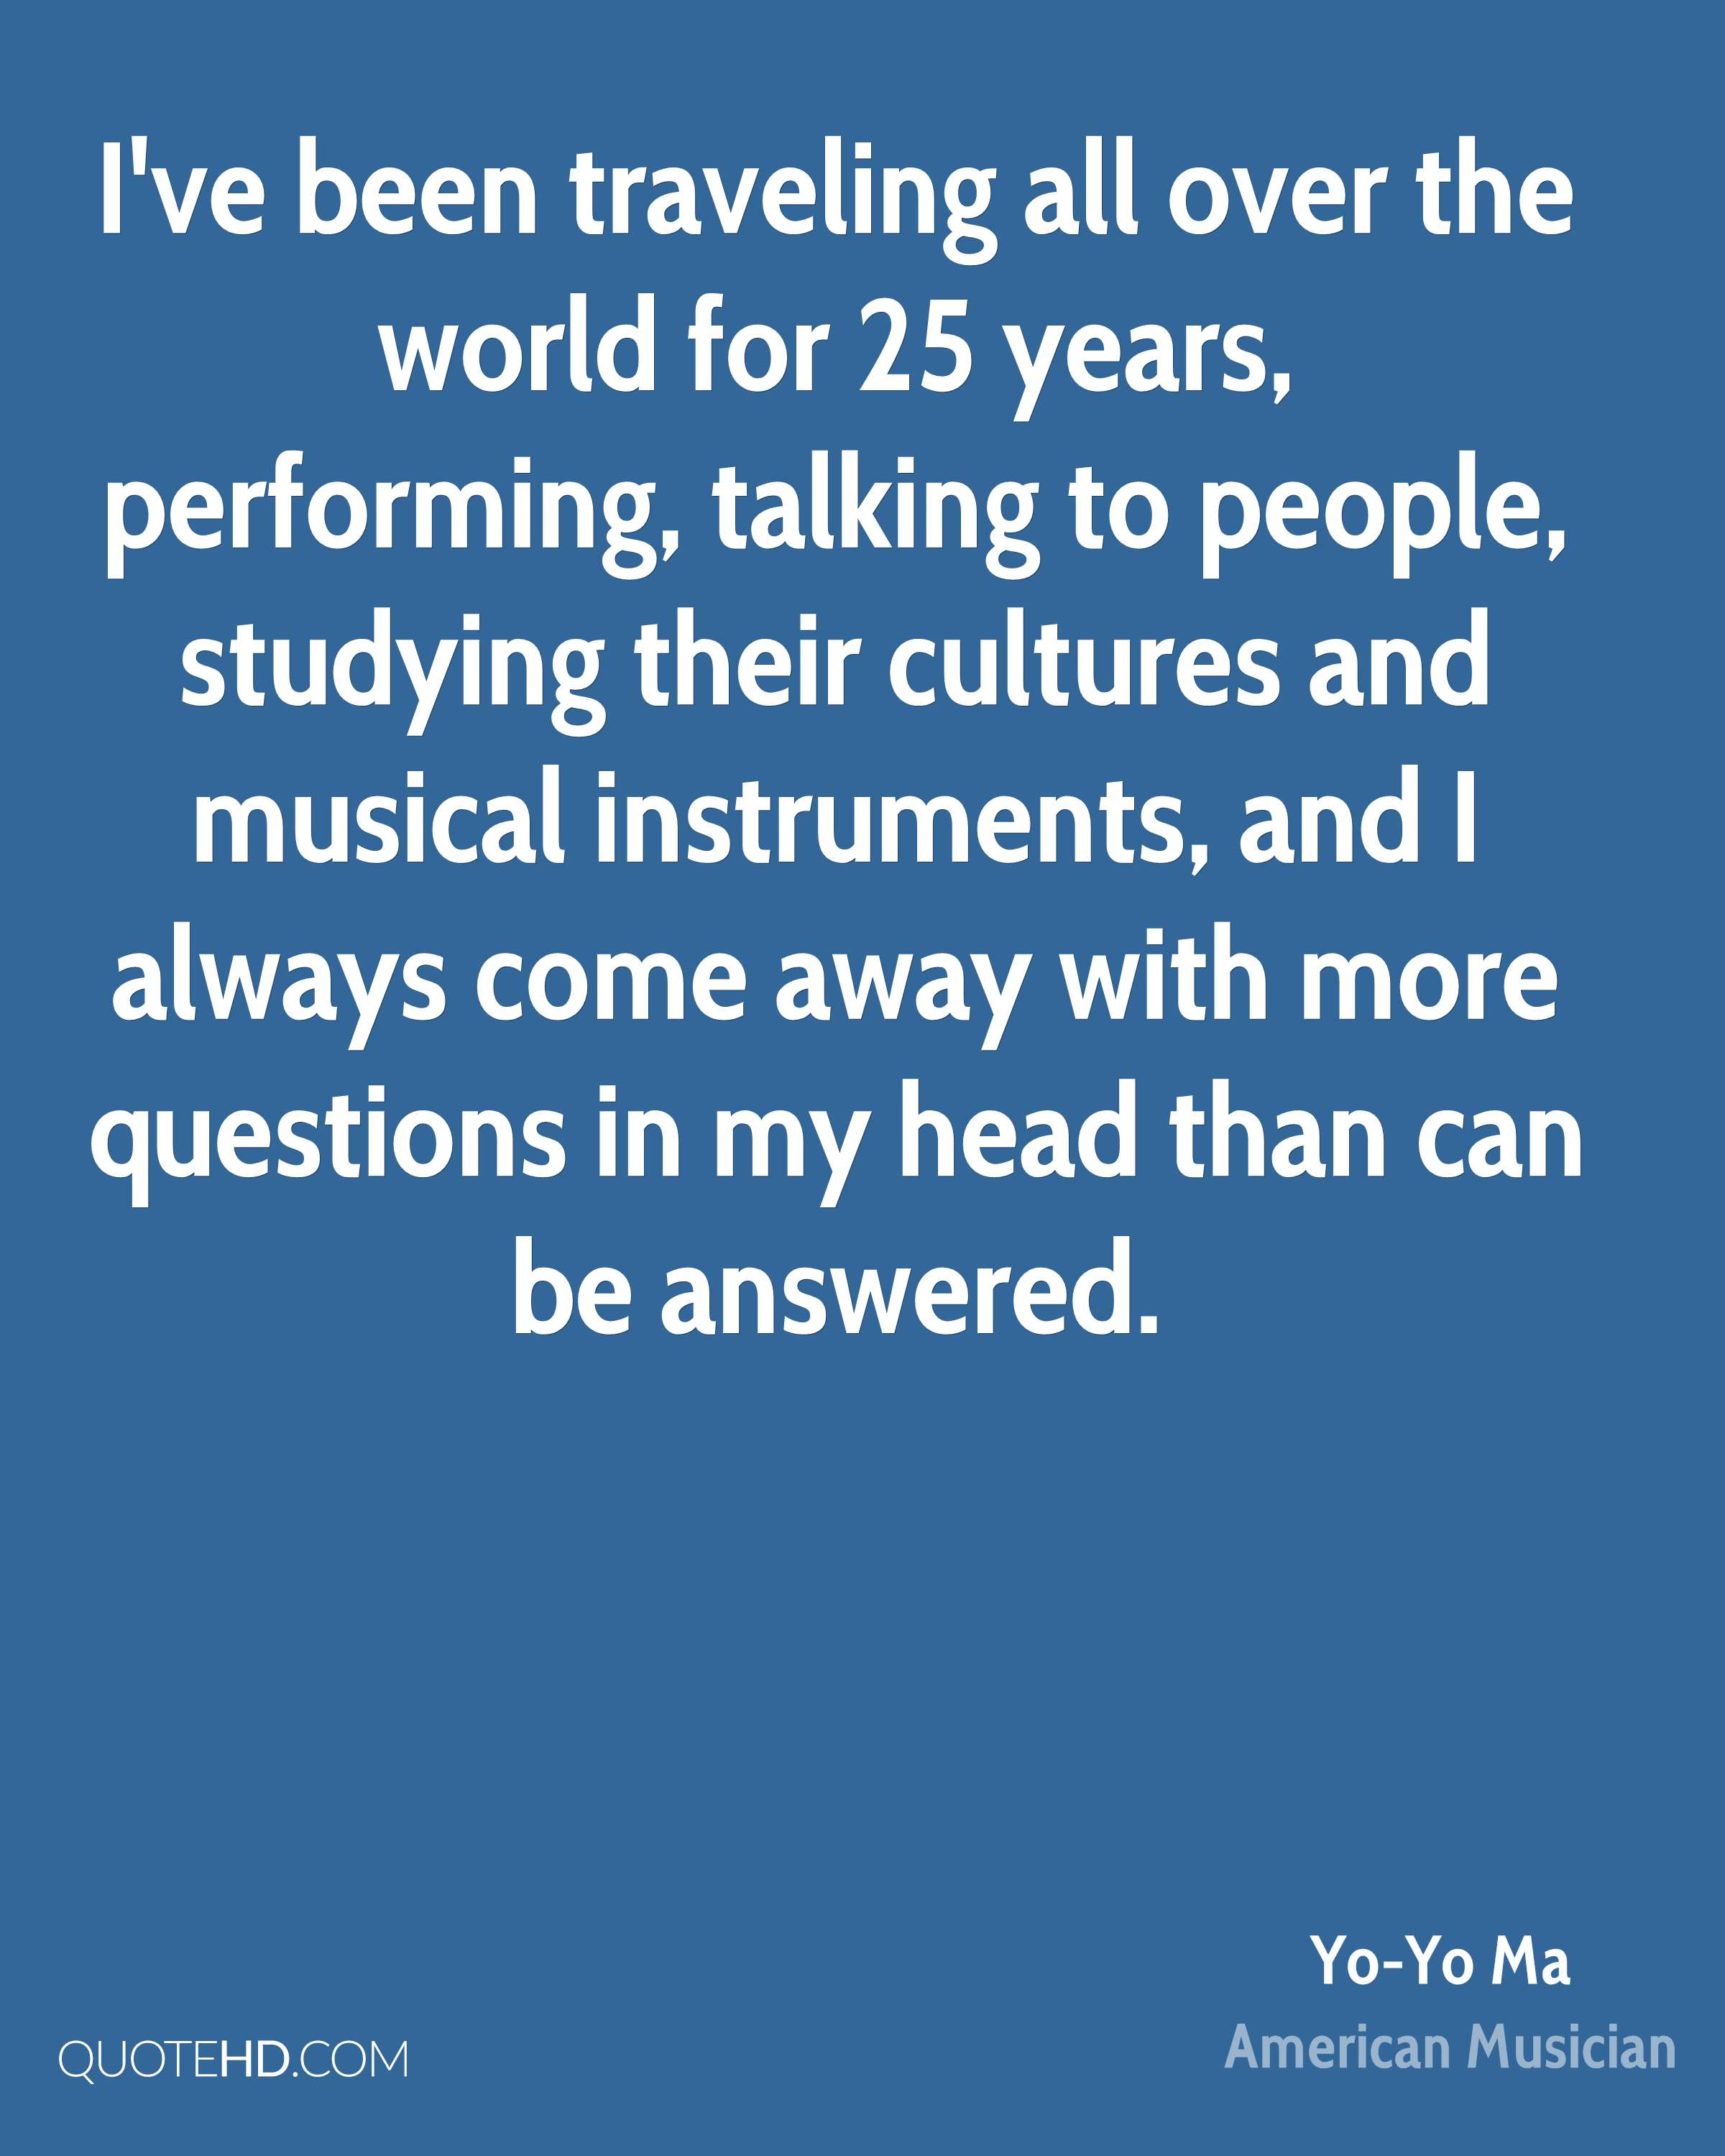 I've been traveling all over the world for 25 years, performing, talking to people, studying their cultures and musical instruments, and I always come away with more questions in my head than can be answered.